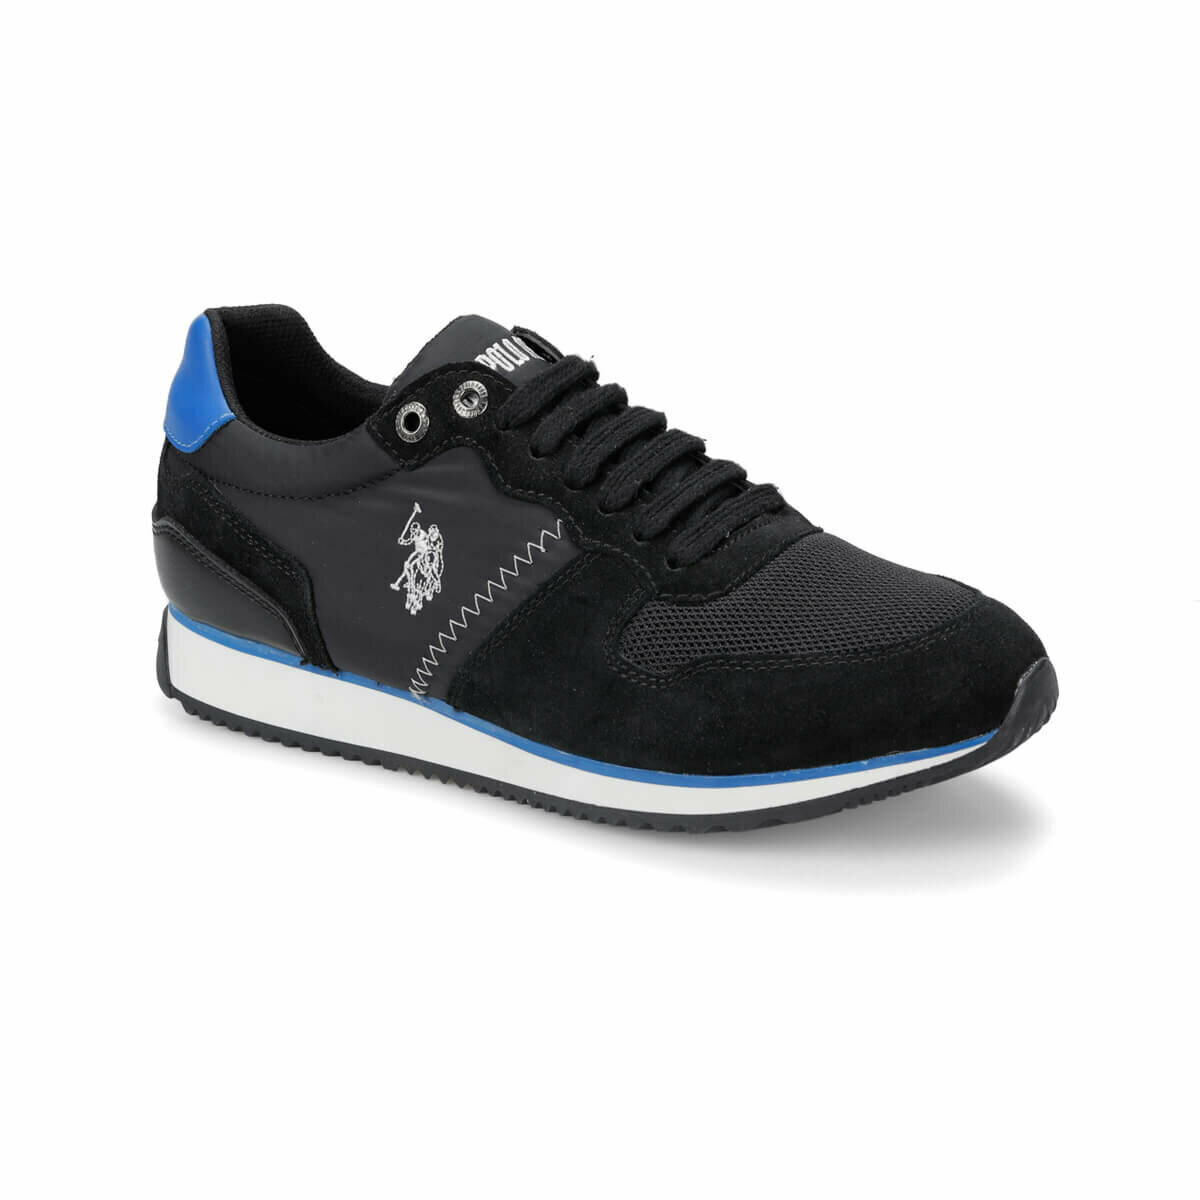 FLO MAC Black Men 'S Sneaker Shoes U.S. POLO ASSN.